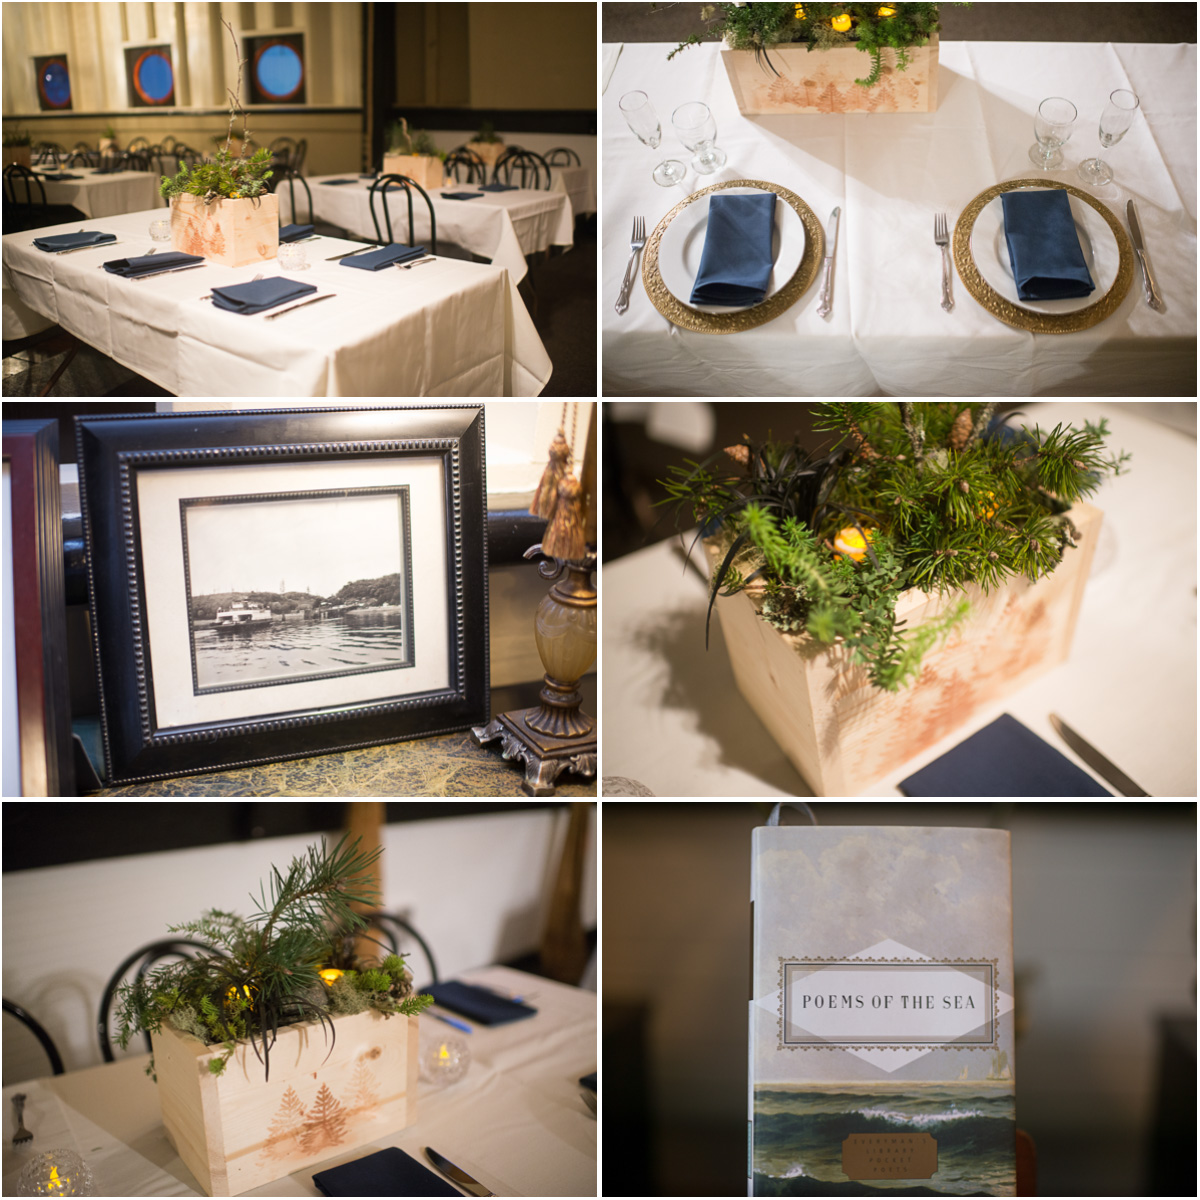 woodsy-wedding-table-settings-ferry-boat-wedding